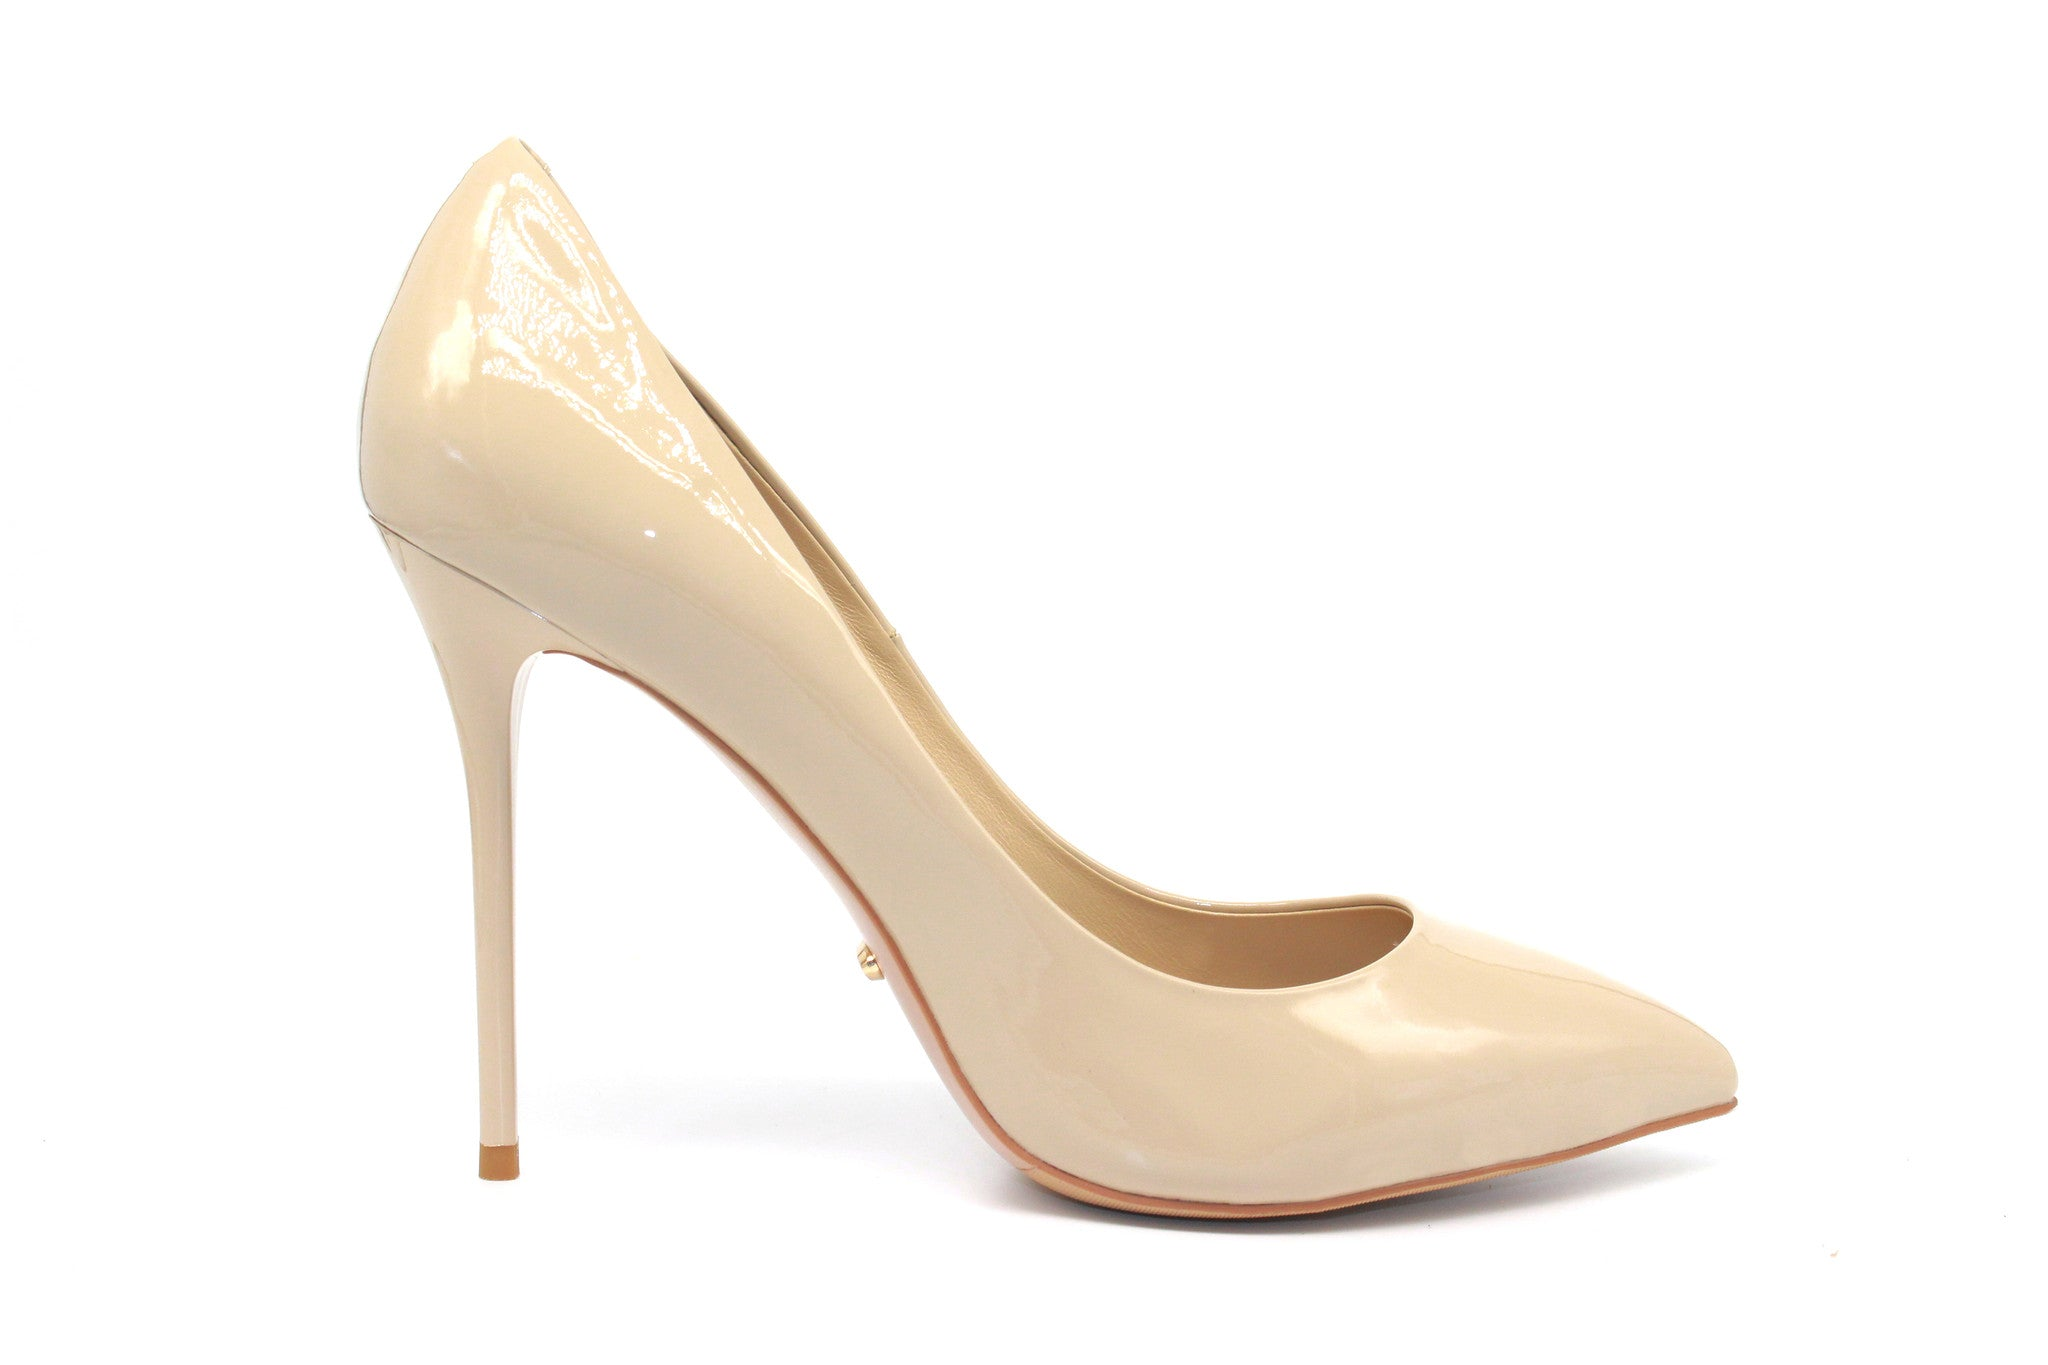 Get the best deals on 2 inch nude heels and save up to 70% off at Poshmark now! Whatever you're shopping for, we've got it.